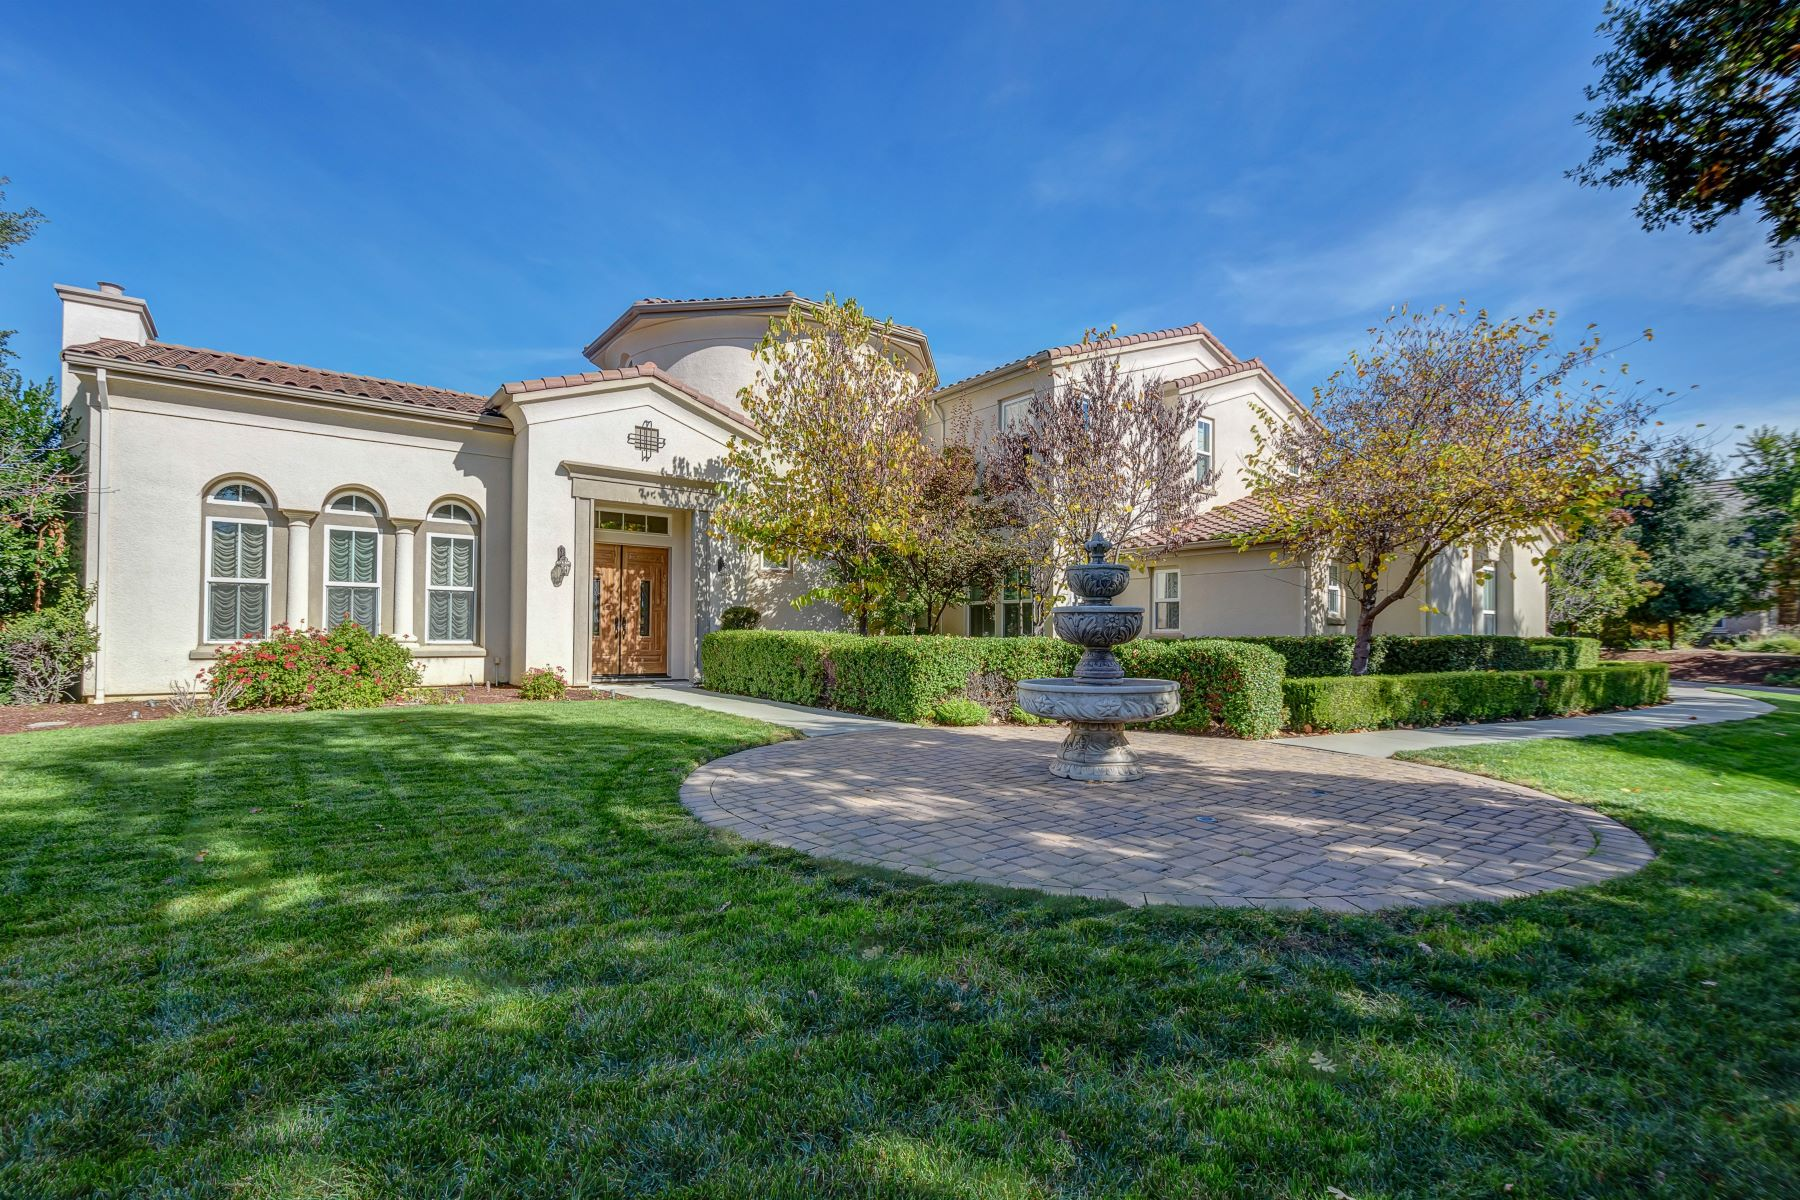 Single Family Homes for Sale at 900 Sycamore Road, Pleasanton 94566 900 Sycamore Road Pleasanton, California 94566 United States